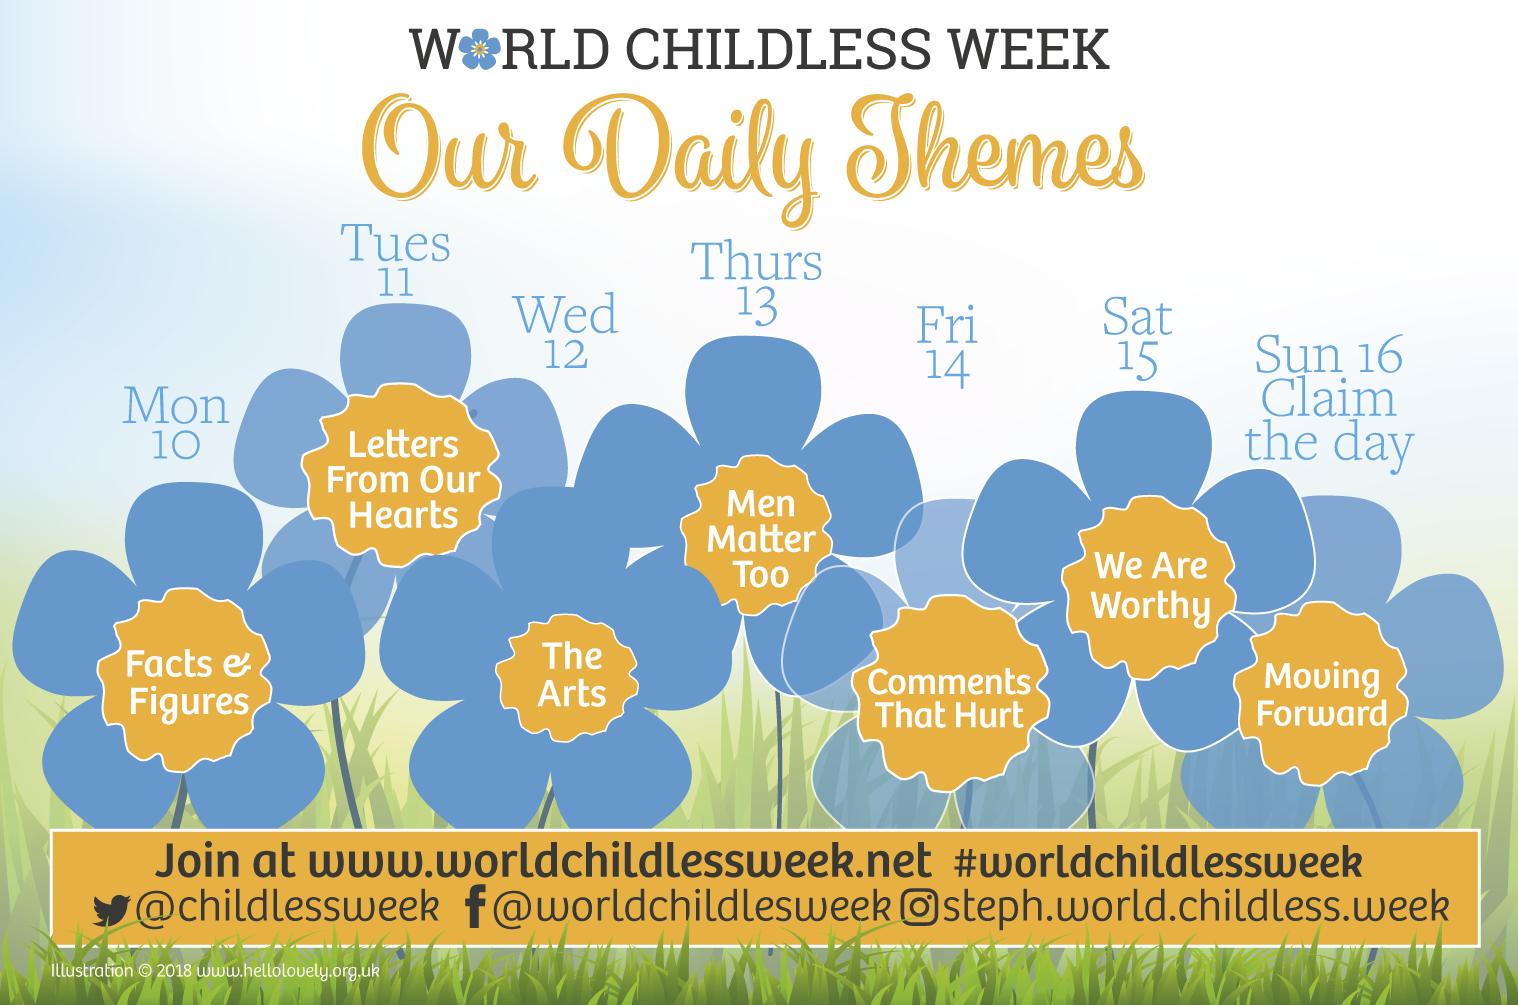 Supporting Word Childless Week